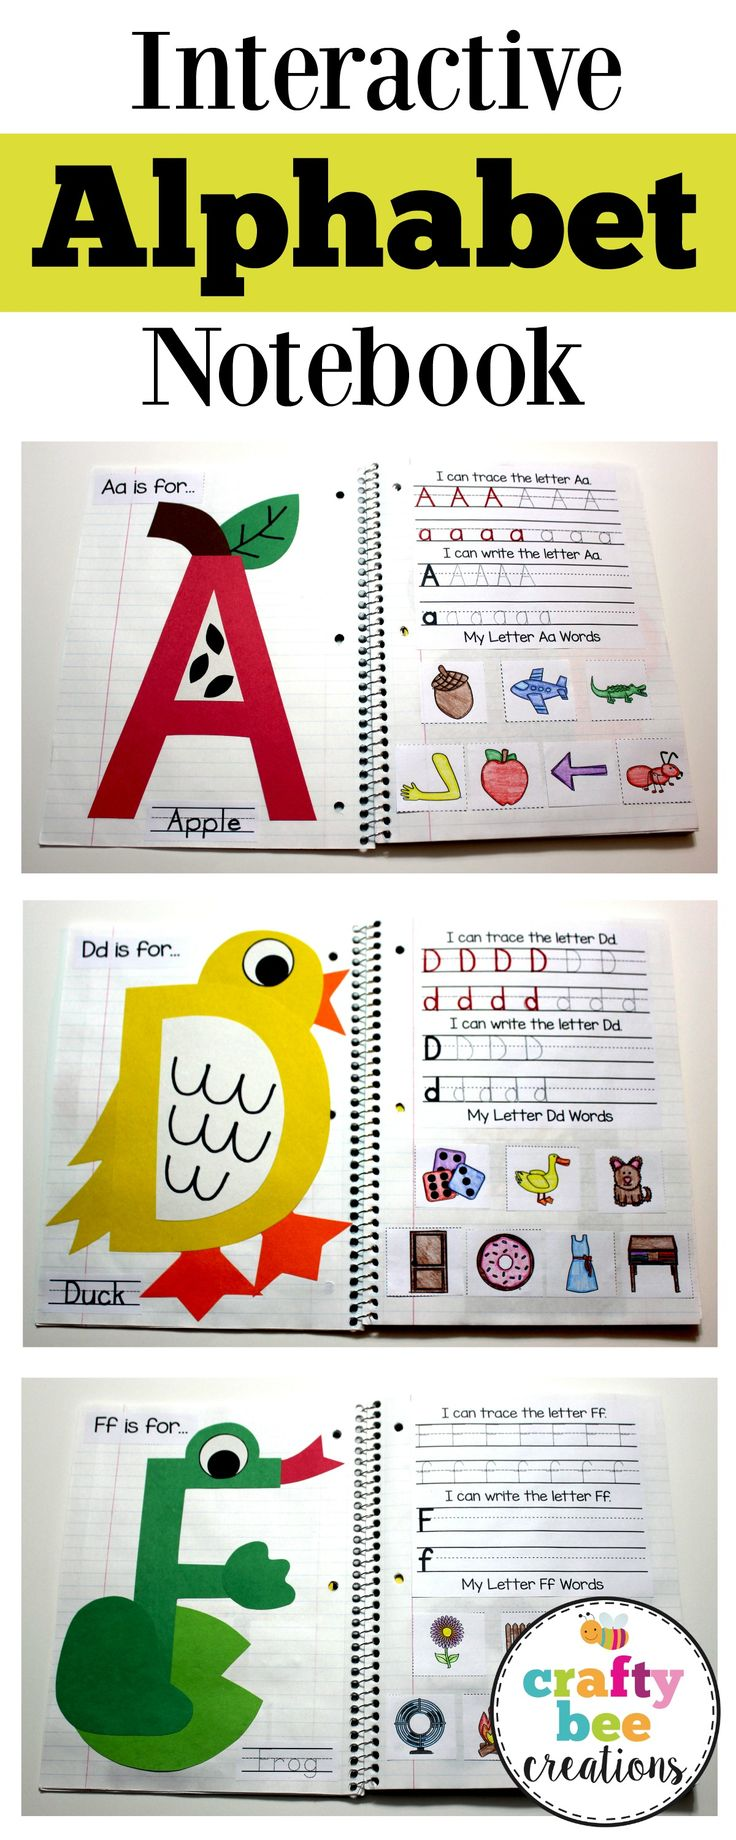 This Alphabet Interactive Notebook makes learning about letters A to Z fun by having students make a craft of each letter. They will also work on their letter writing as well as cut and paste words that start with each letter into the notebook. It's a great year round activity!